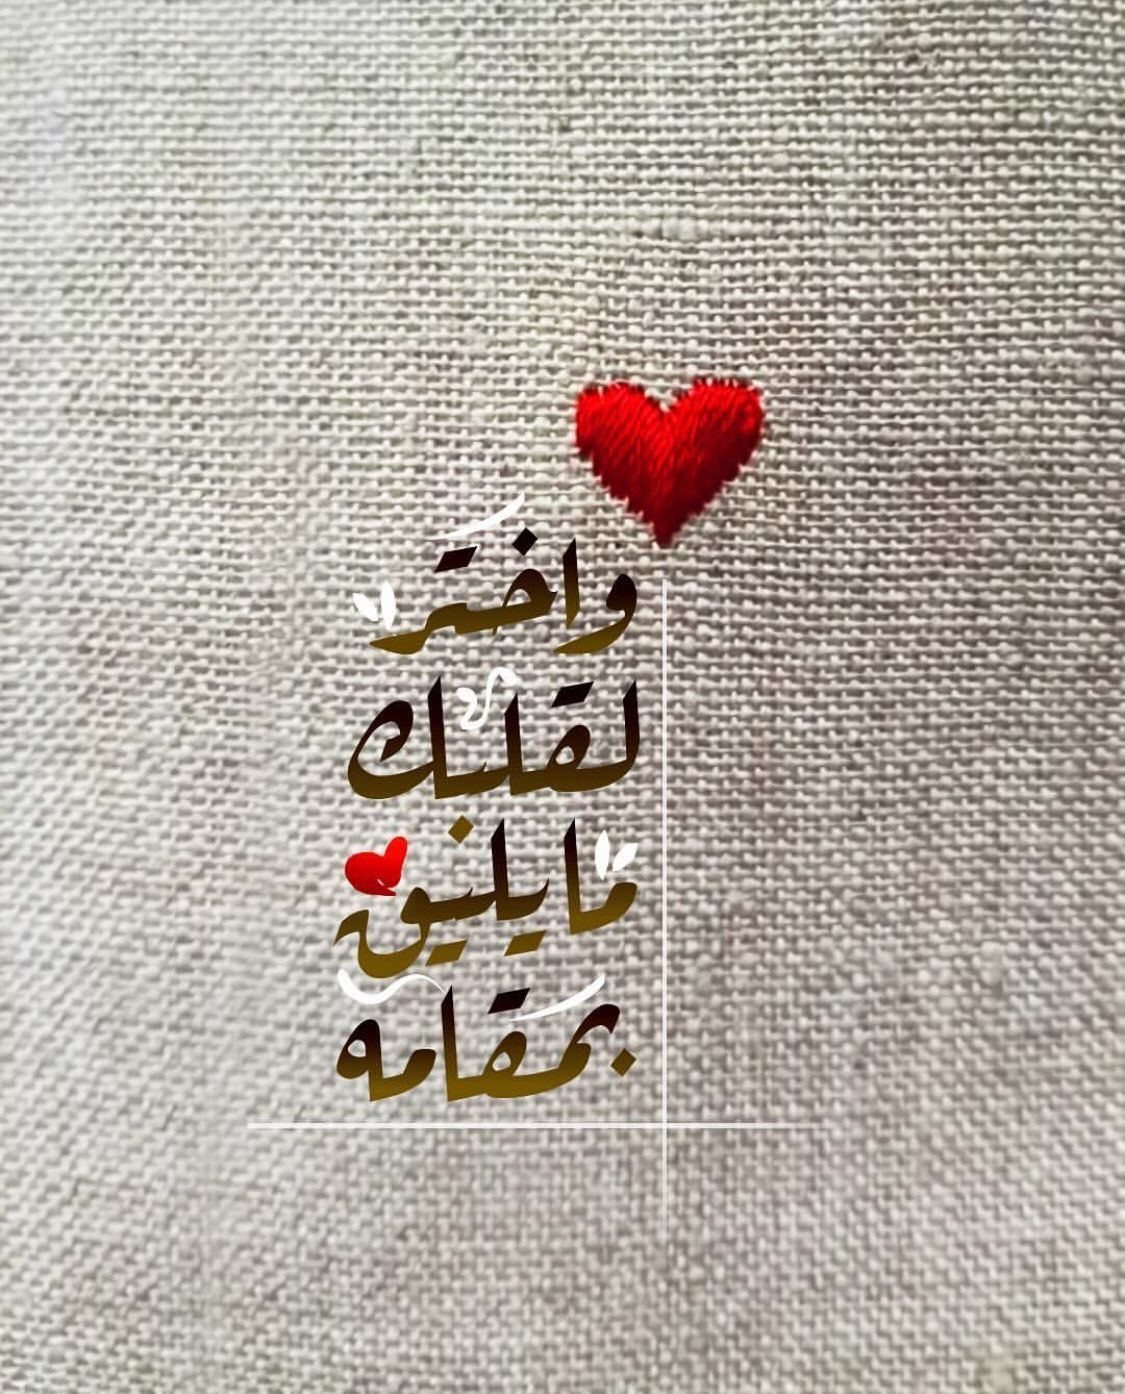 و لنا في الحلال لقاء Quotes For Book Lovers Arabic Quotes Romantic Words